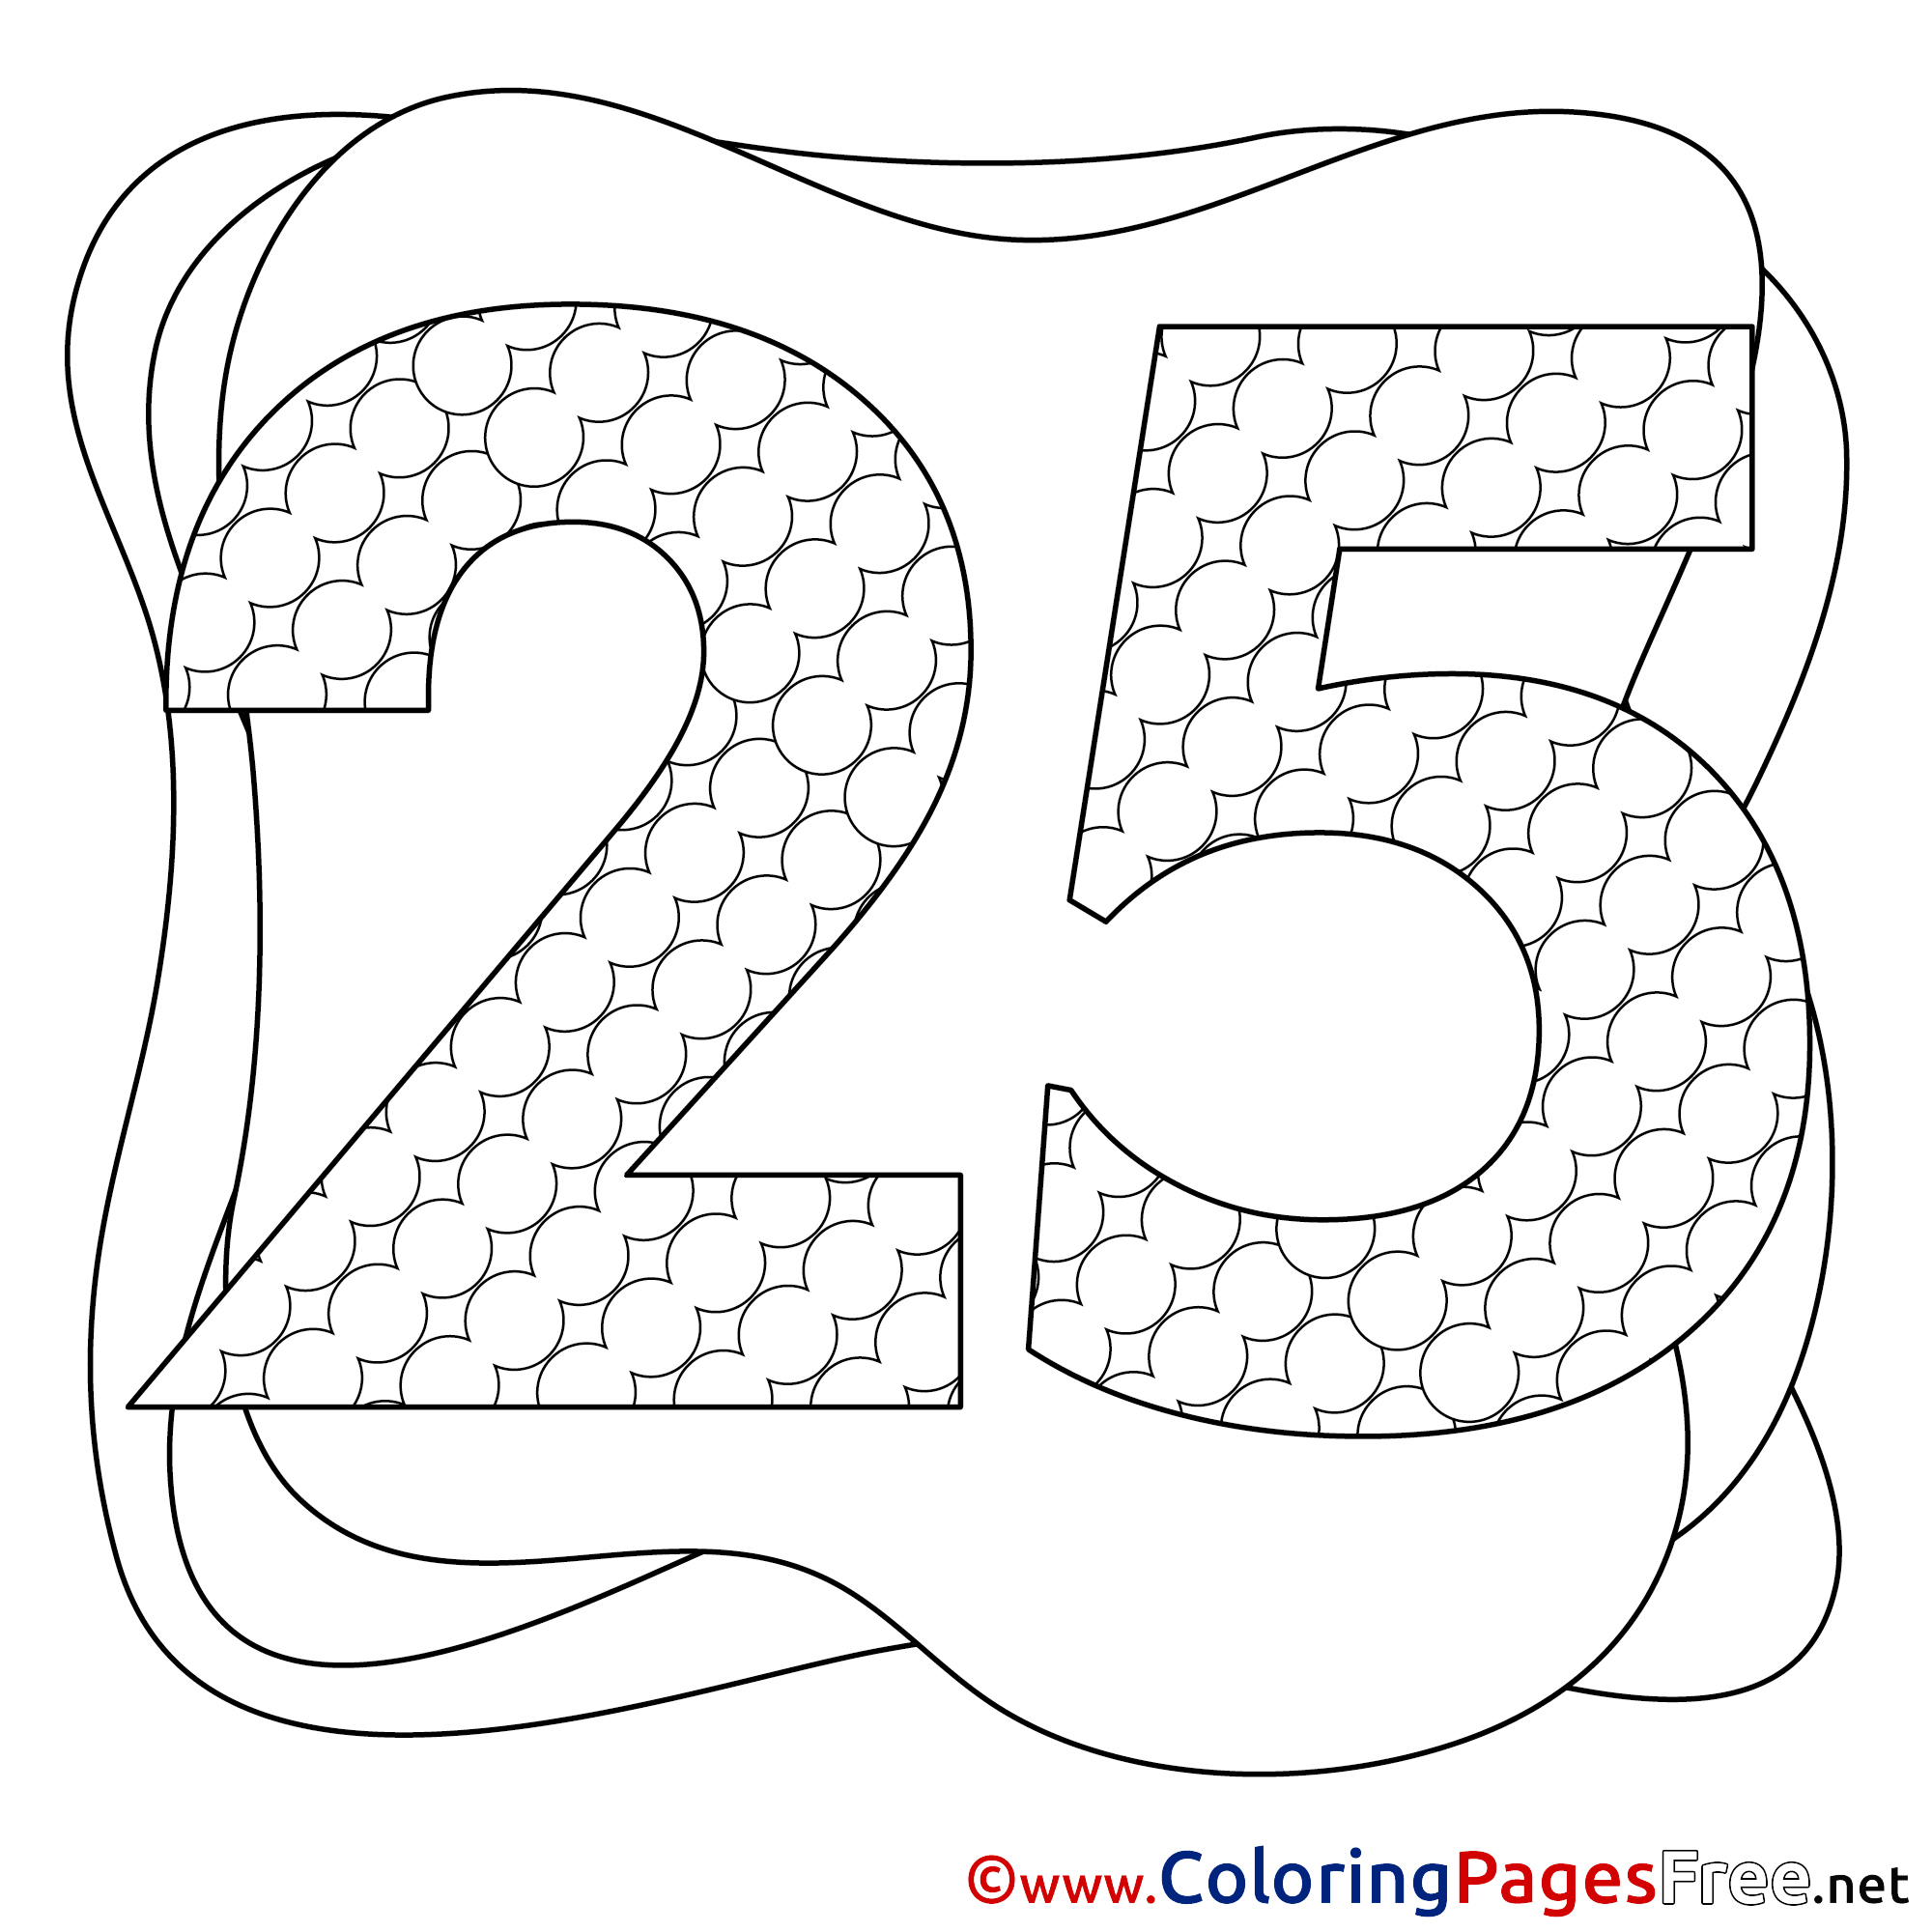 25 years happy birthday colouring sheet free for Free birthday coloring pages